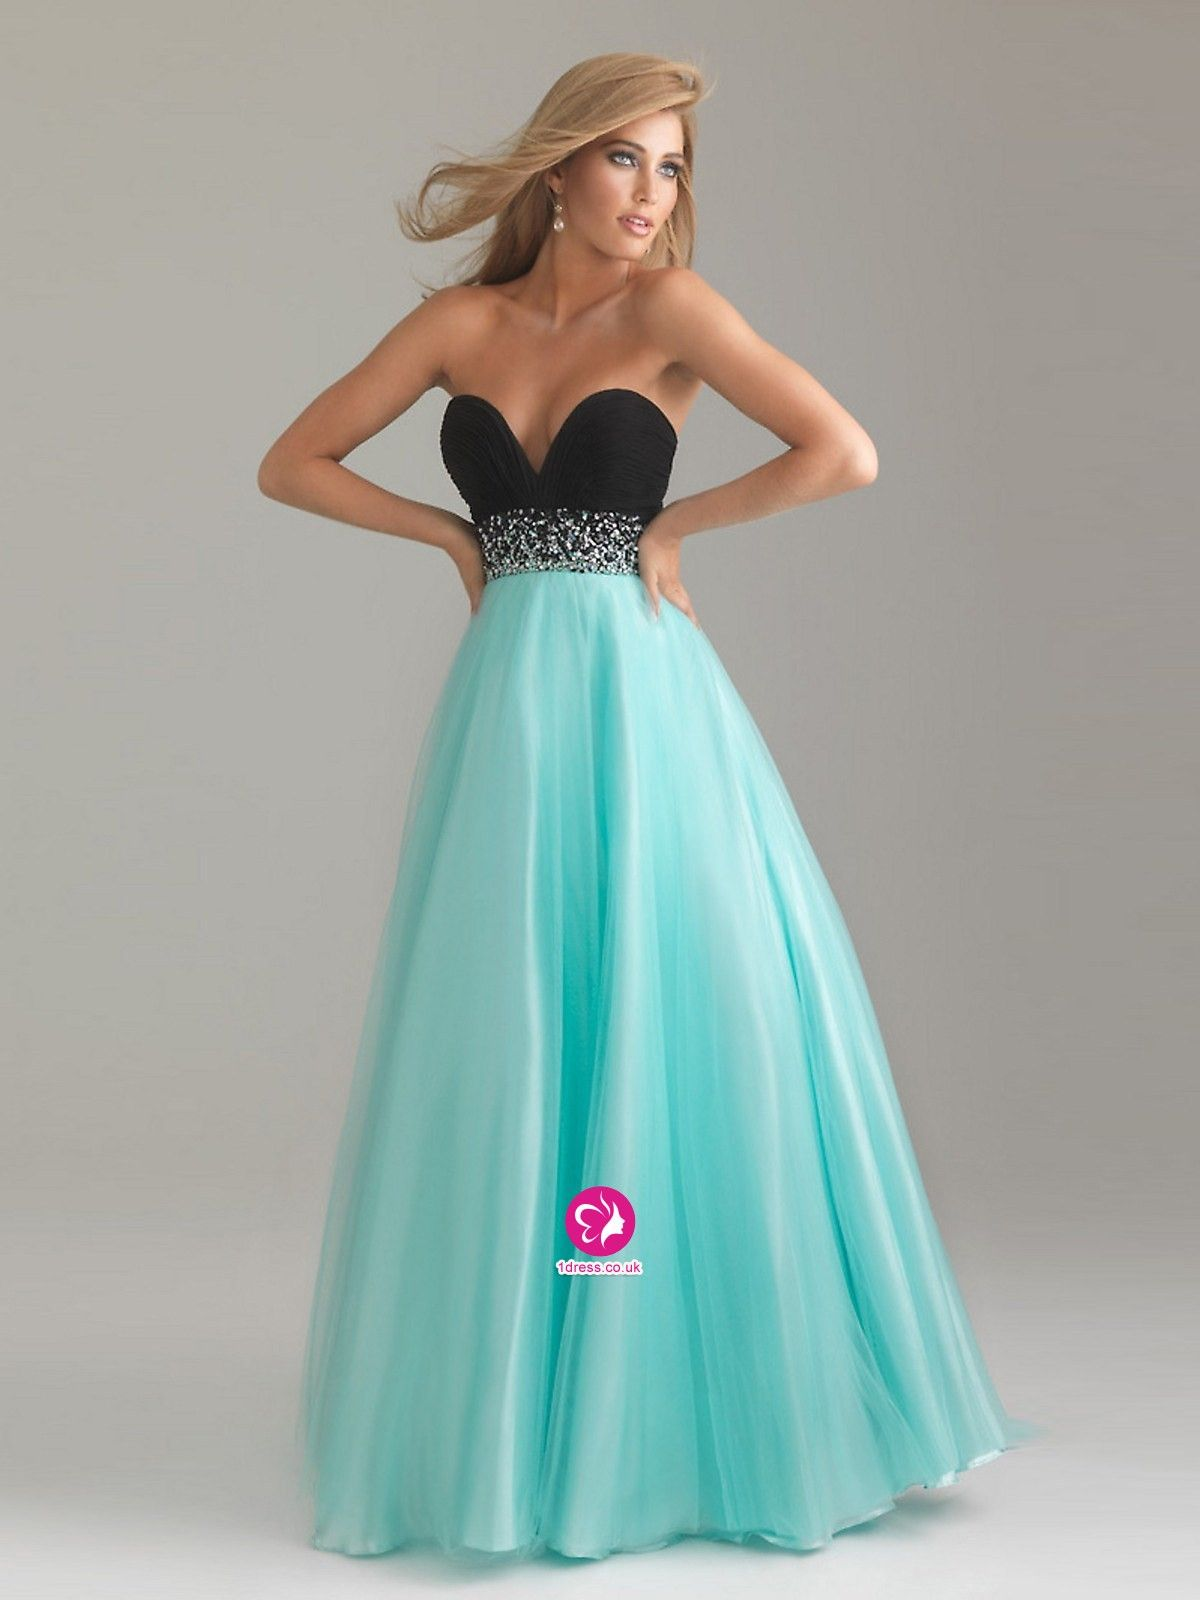 Pin by Trudy Smith on I need that | Pinterest | Prom, Tulle prom ...